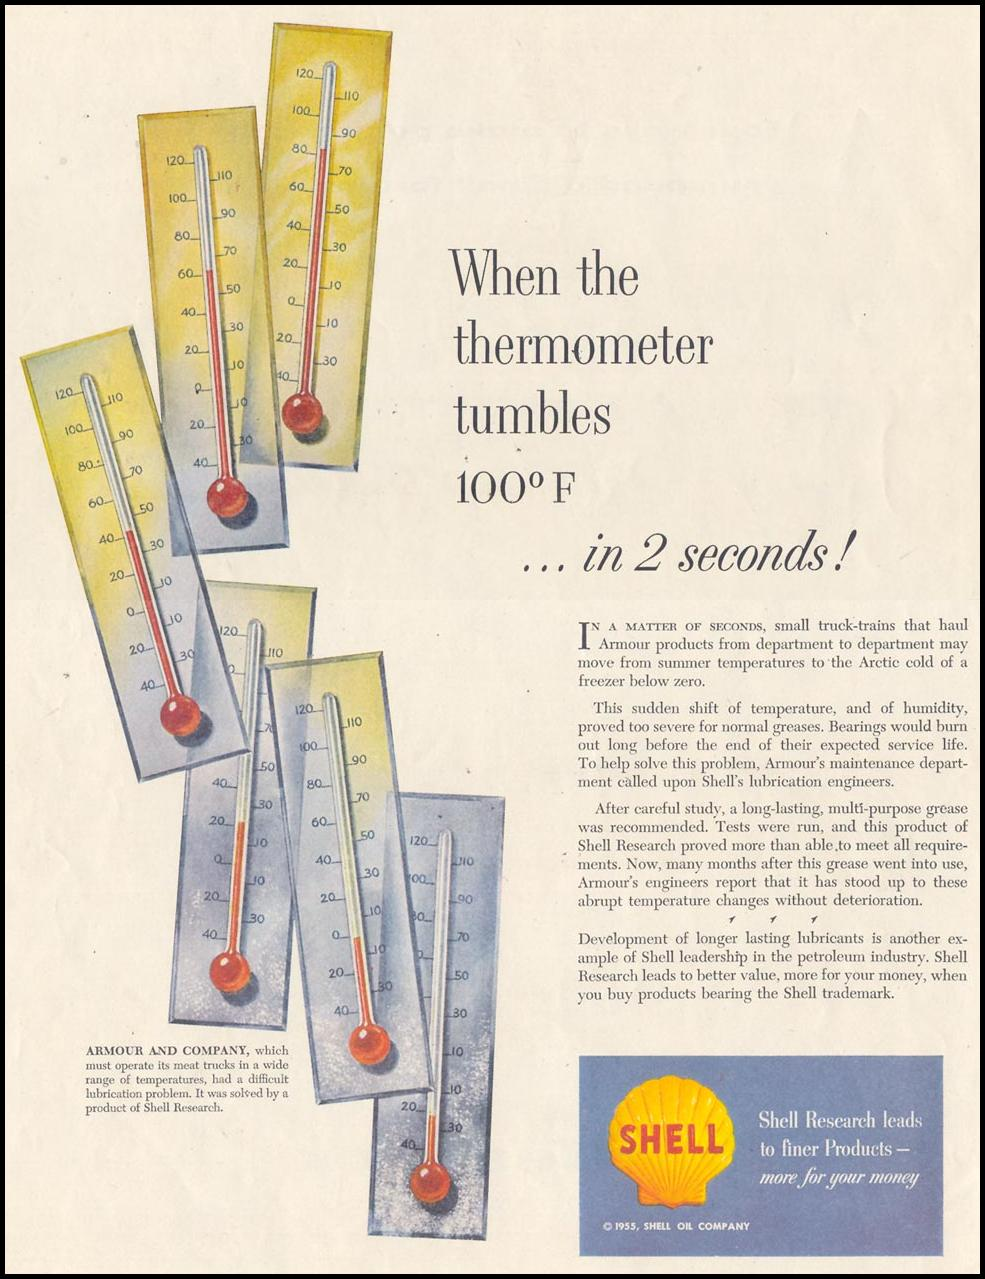 SHELL RESEARCH SATURDAY EVENING POST 07/23/1955 p. 2